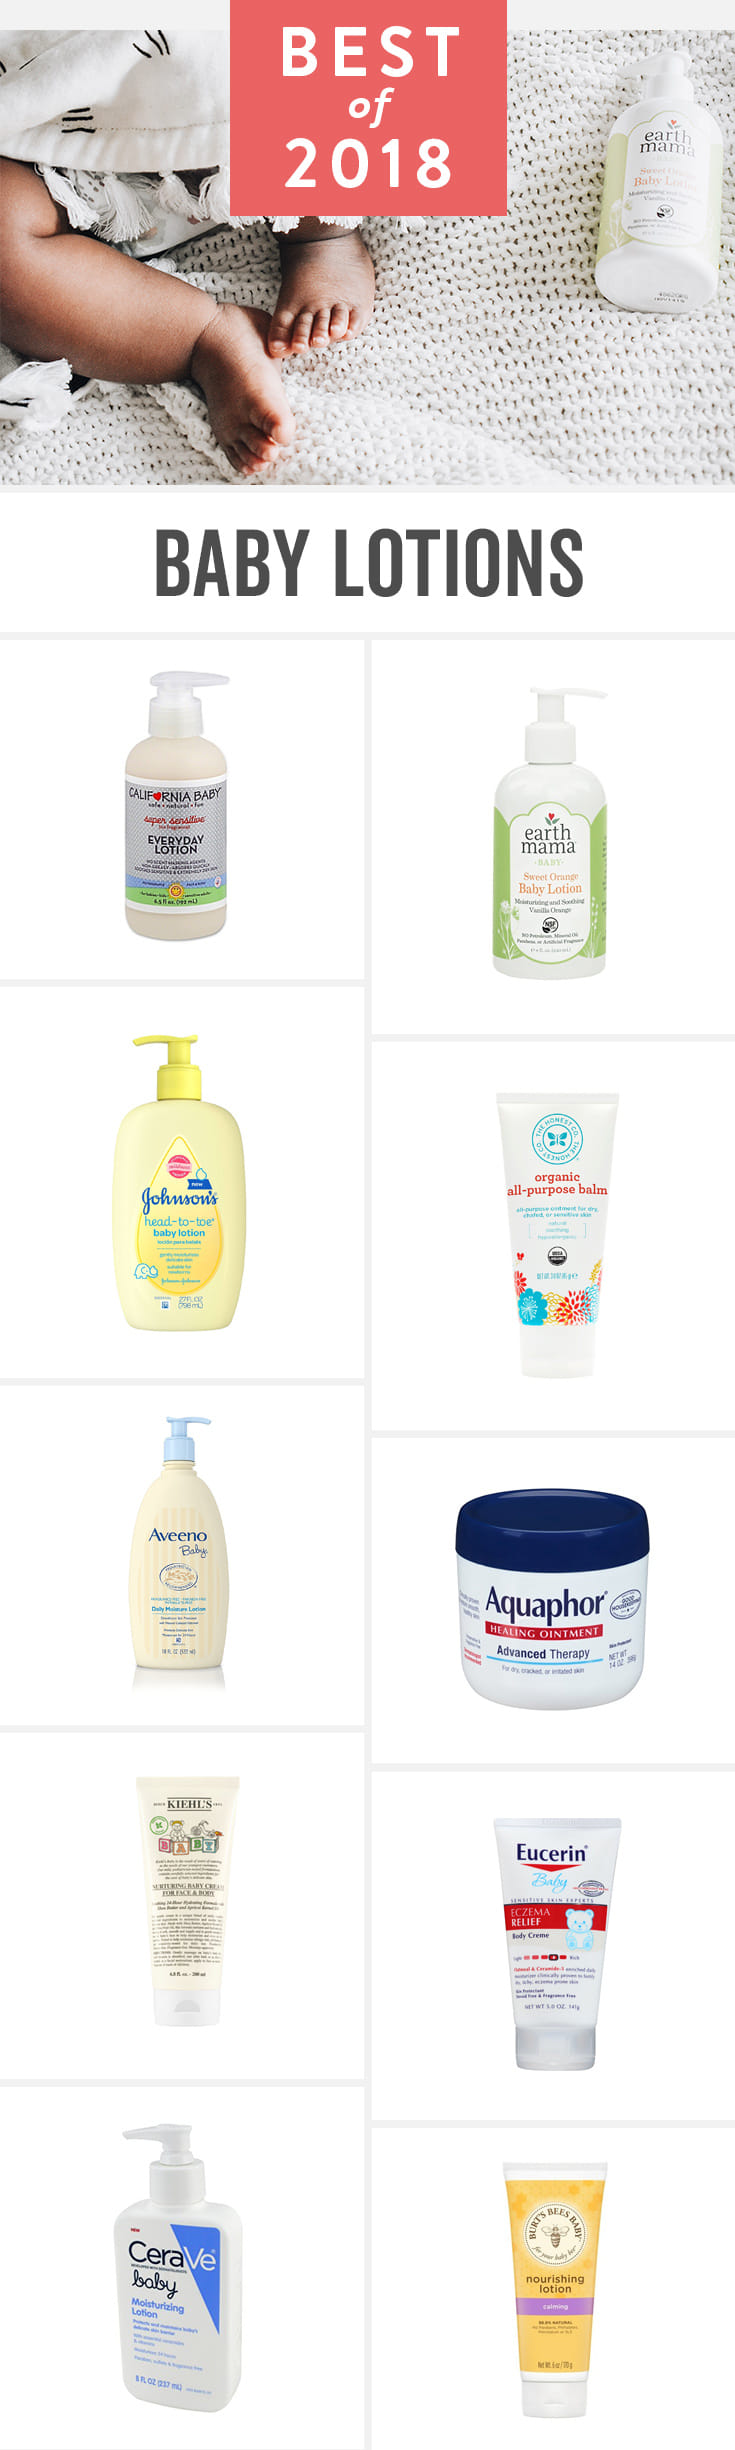 The best baby lotions for newborn sensitive skin. Natural and organic products, plus standby budget favorites according to parents. Add your favorite baby lotion to your baby registry.